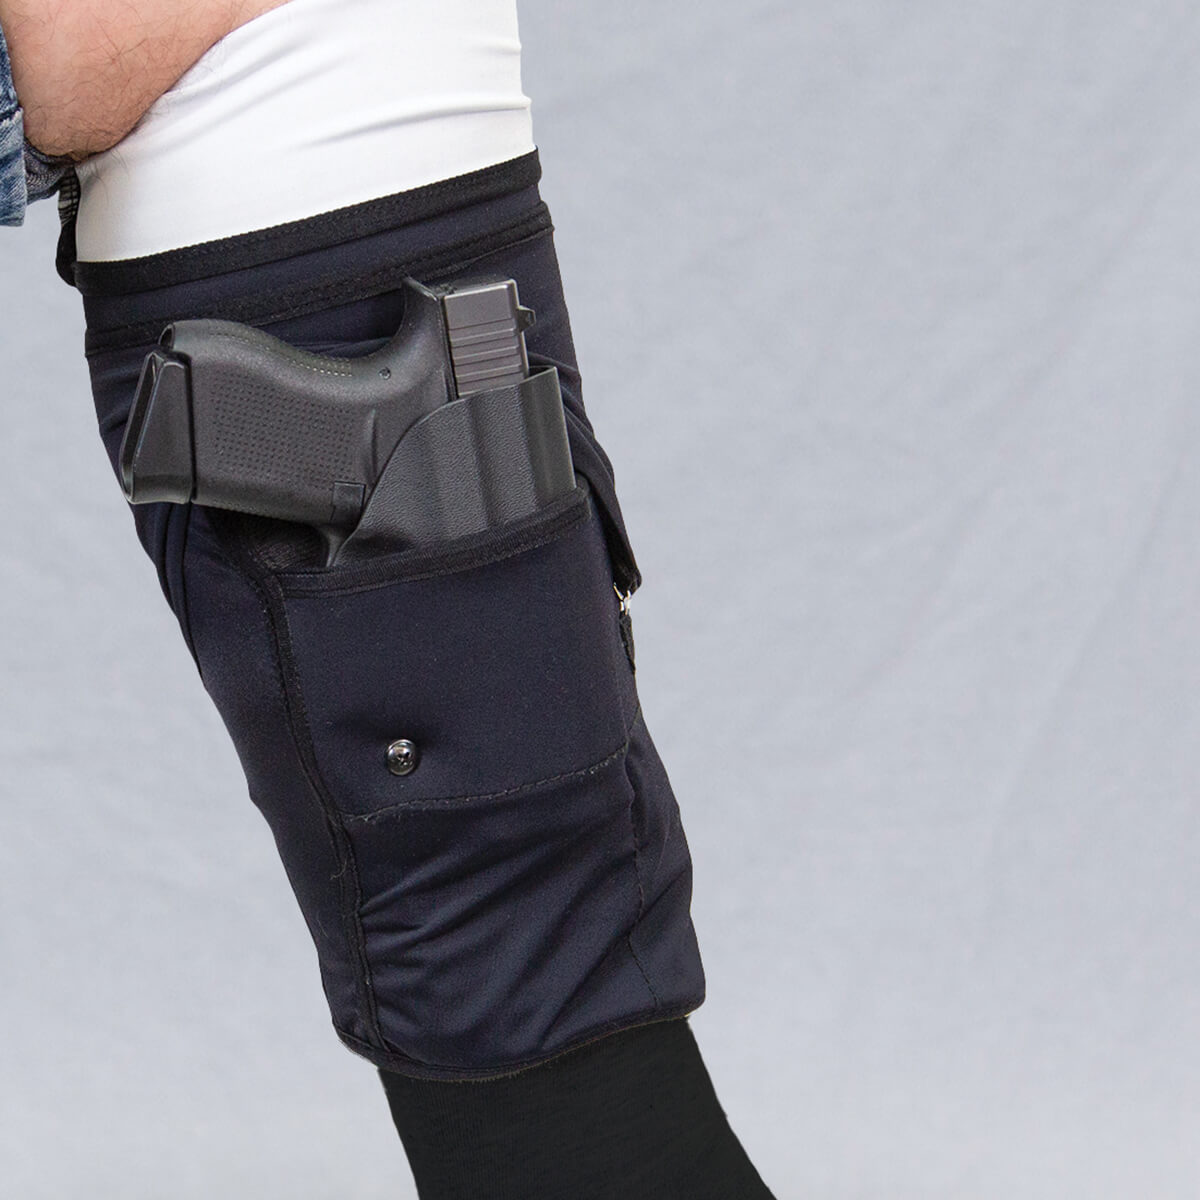 470744_Mid-Calf_Gun-Sox-Pro_Retention-flap-pulled_Side-view_Front-Cover